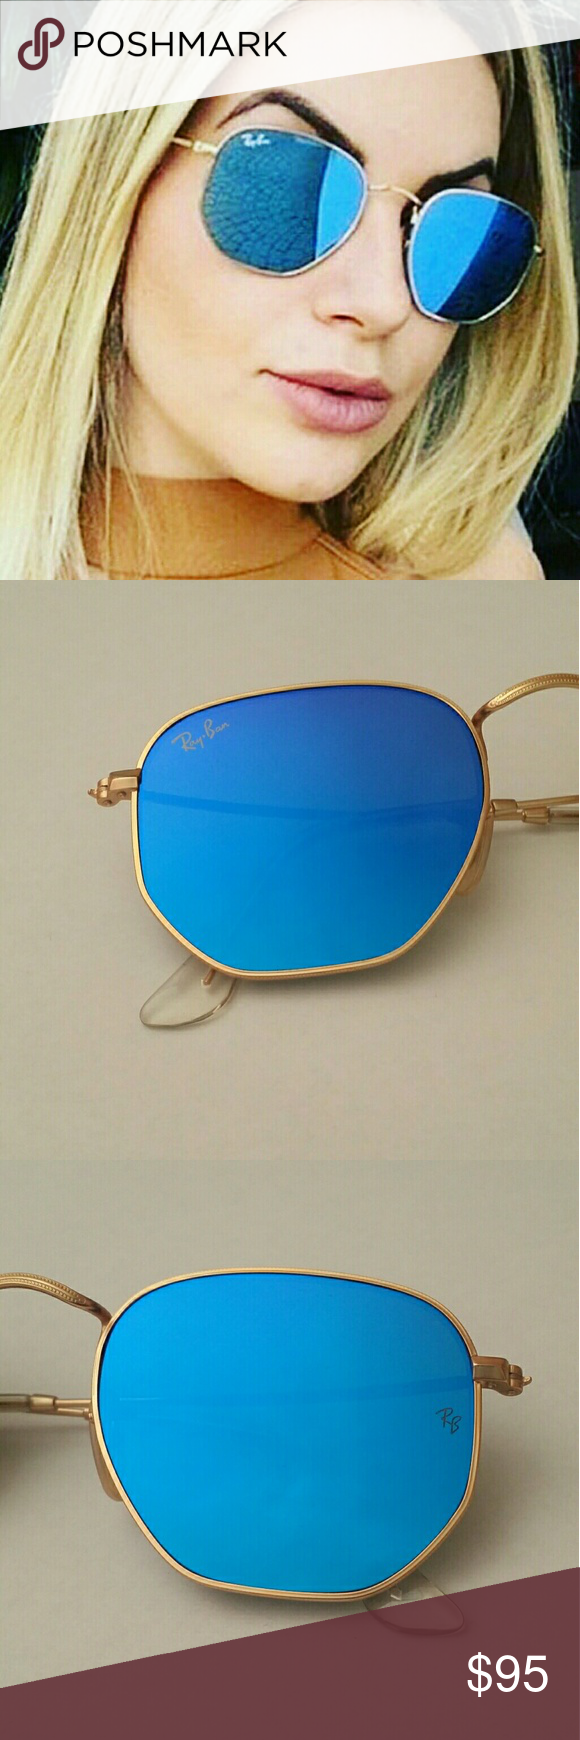 08abb9632 AUTHENTIC! RAY-BAN HEXAGONAL BLUE / GOLD FRAME NO LOW BALL OFFERS ...